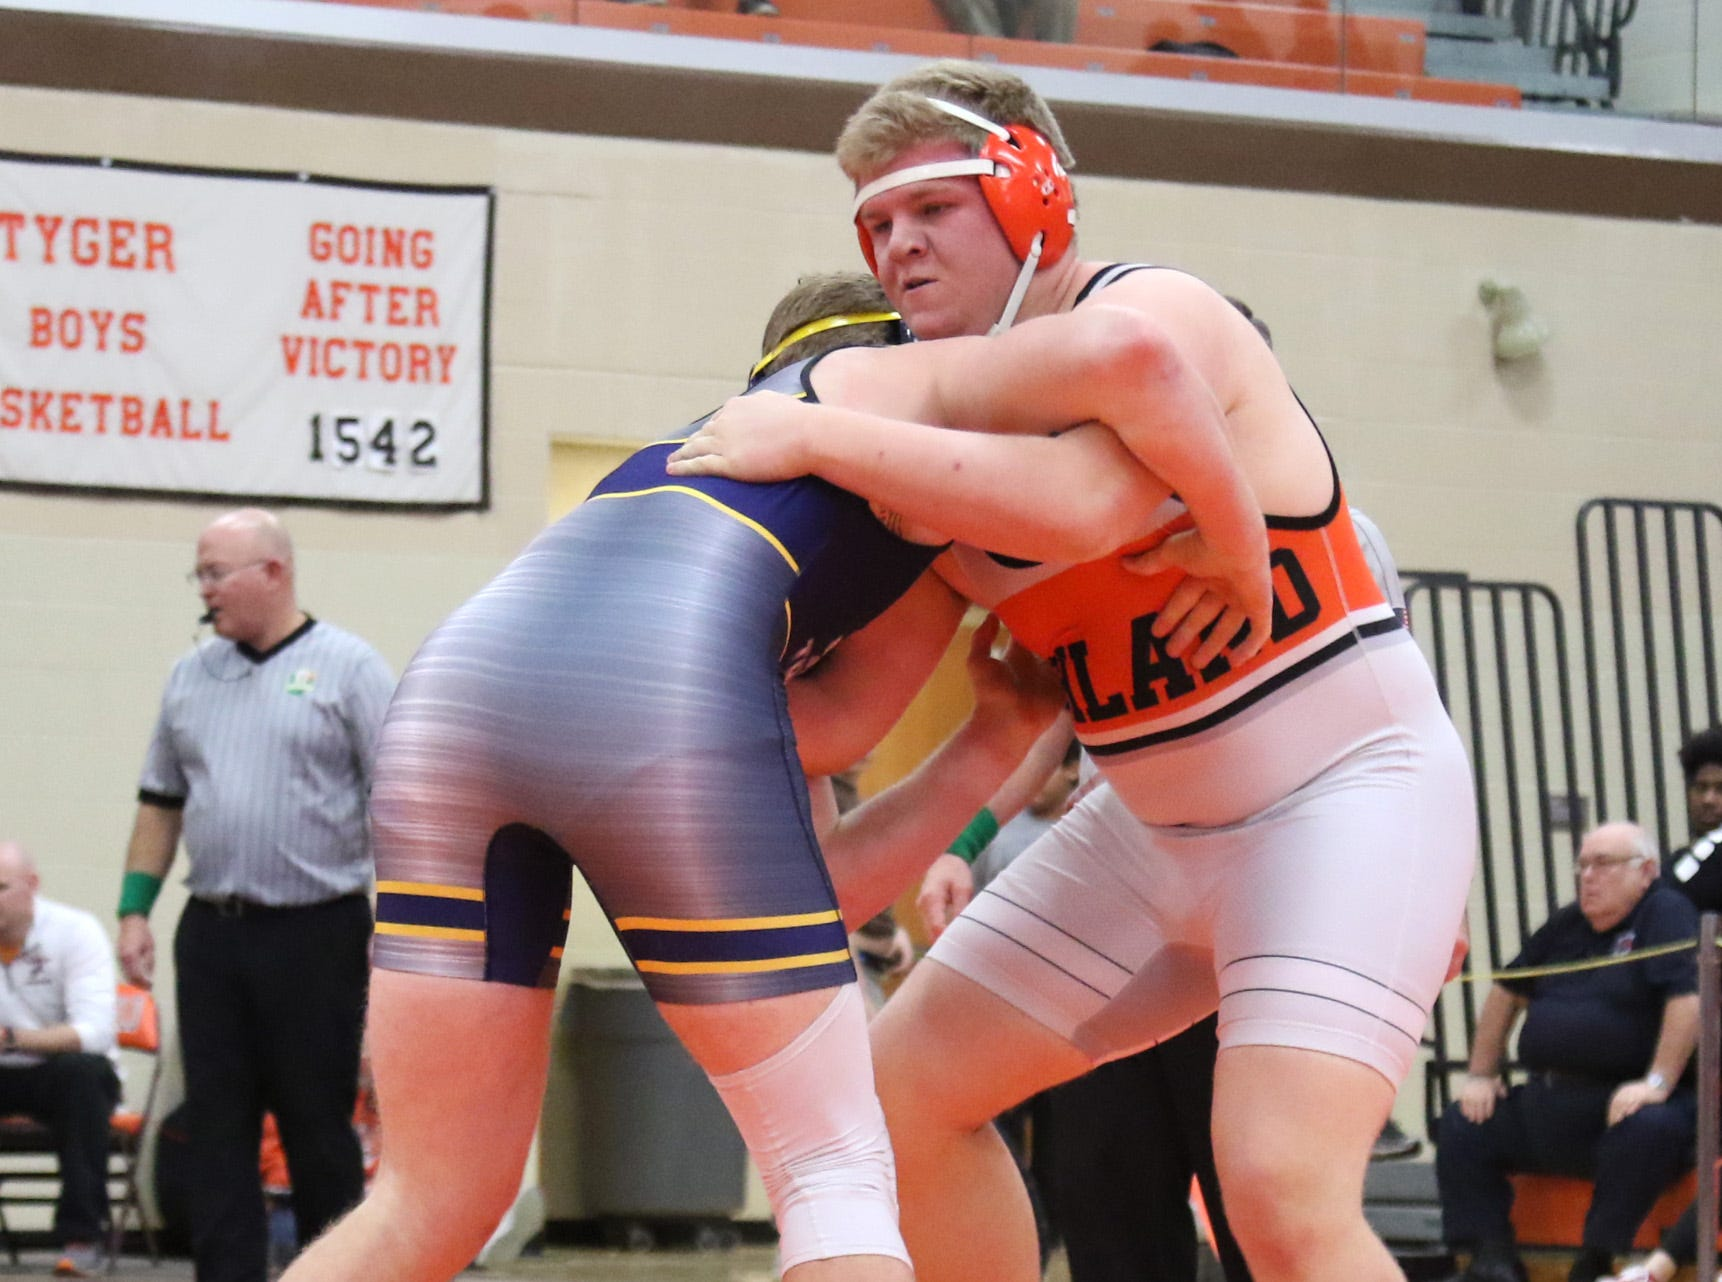 Ashland's Jake Bever spars with Norwalk's Tche Leroux during the final matches at the JC Gorman Wrestling Tournament on Saturday.